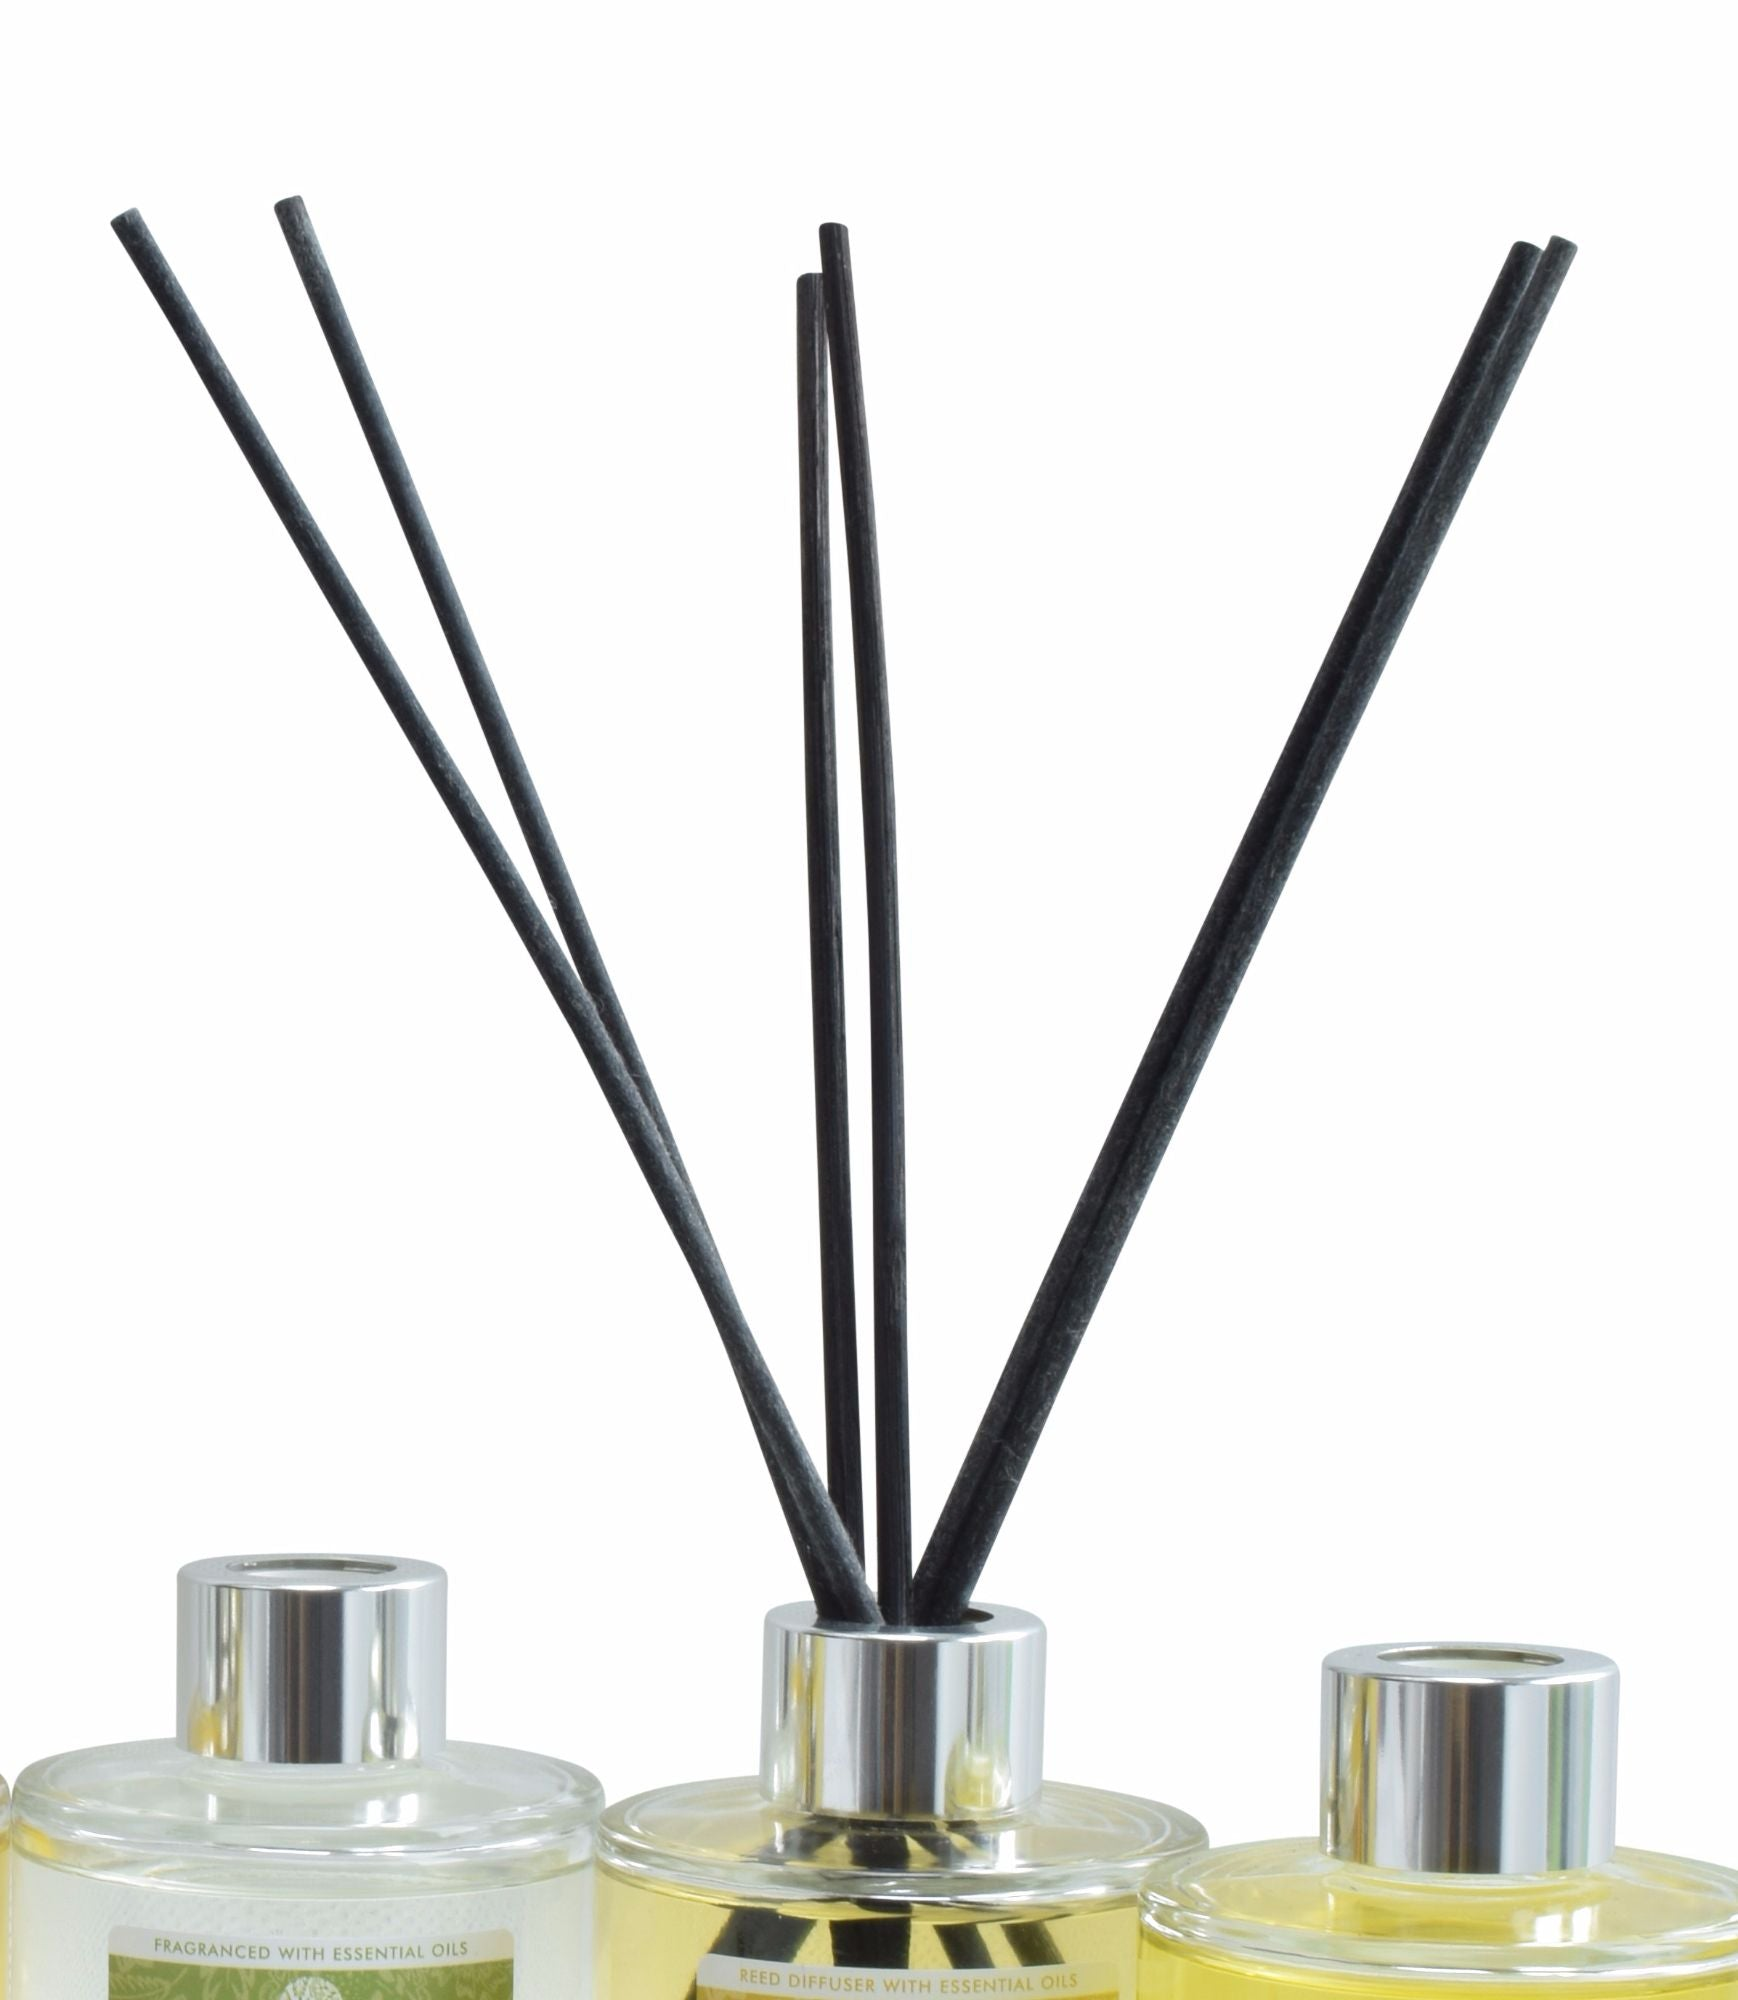 Luxury Diffuser Refill & Reed Sticks Made in Scotland by The Melt Pool